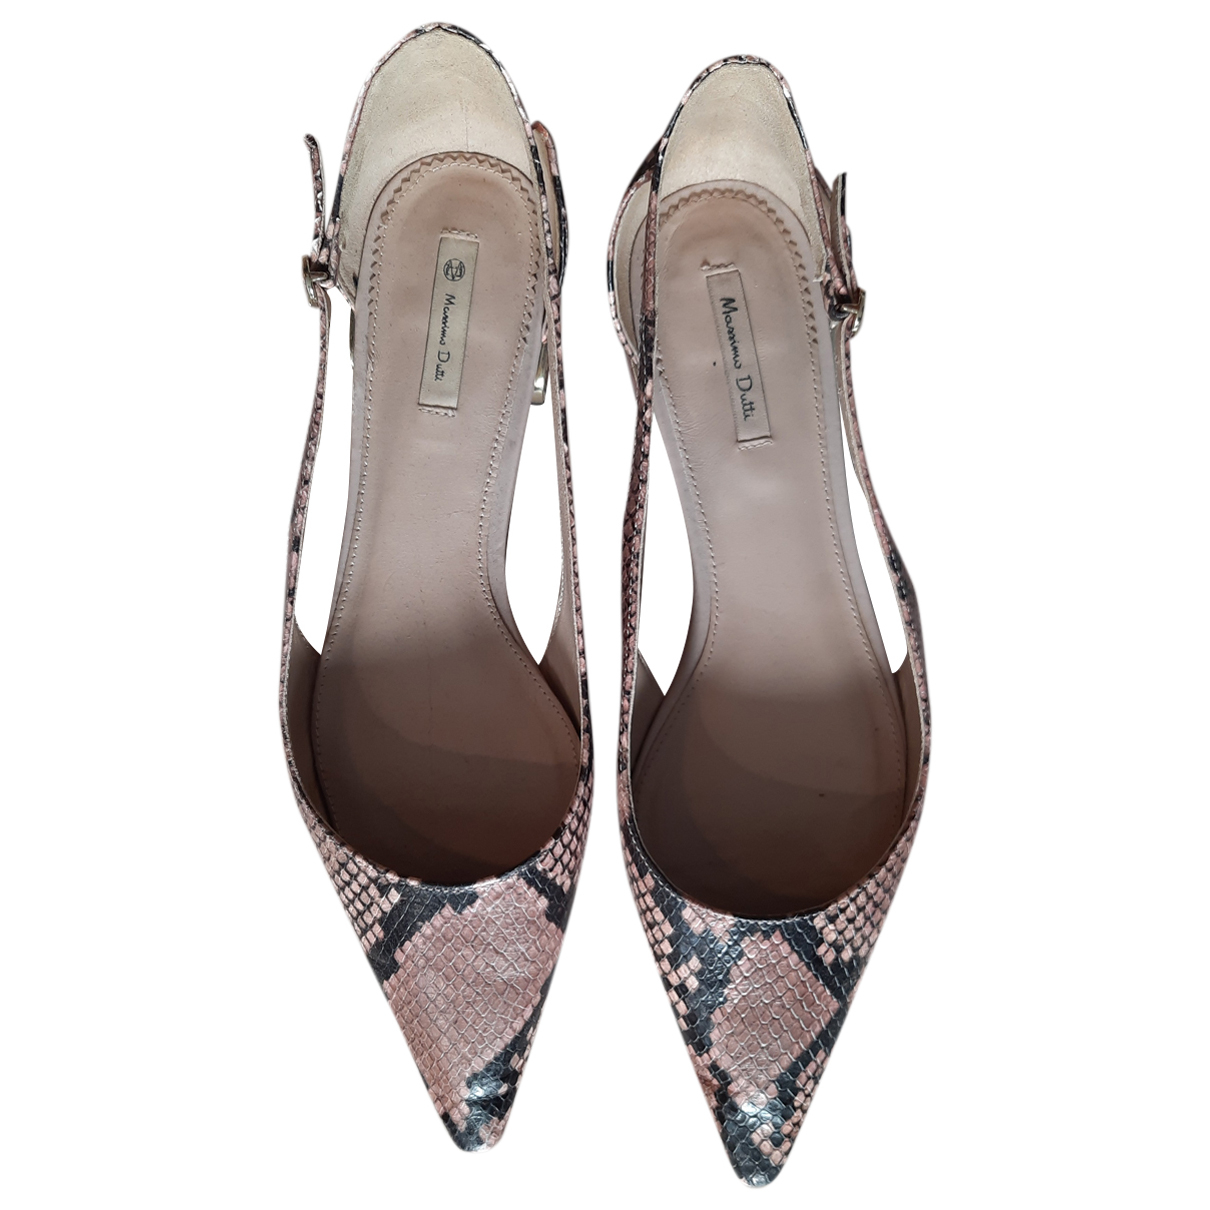 Massimo Dutti N Pink Patent leather Flats for Women 41 EU